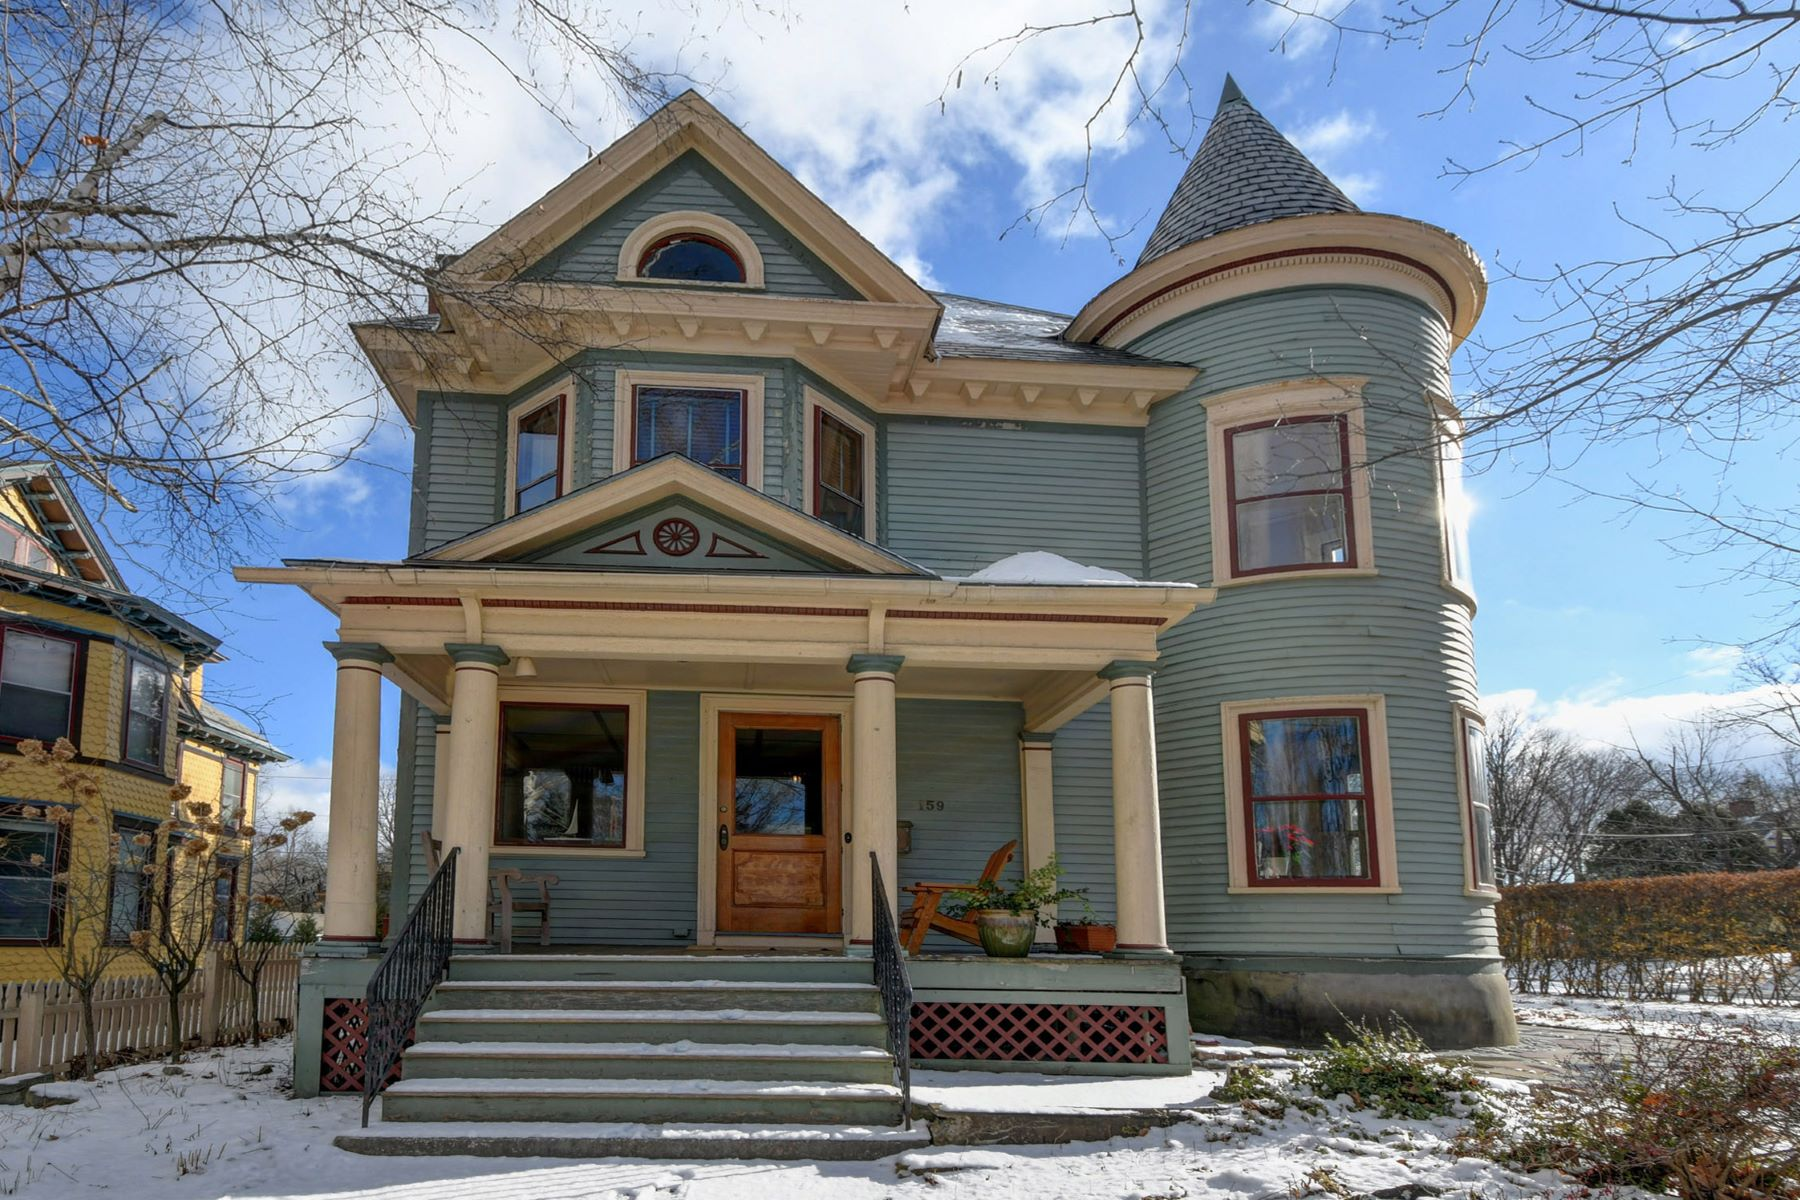 Single Family Home for Active at Gracious and Elegant Victorian in Downtown Cultural District 159 Wendell Ave Pittsfield, Massachusetts 01201 United States